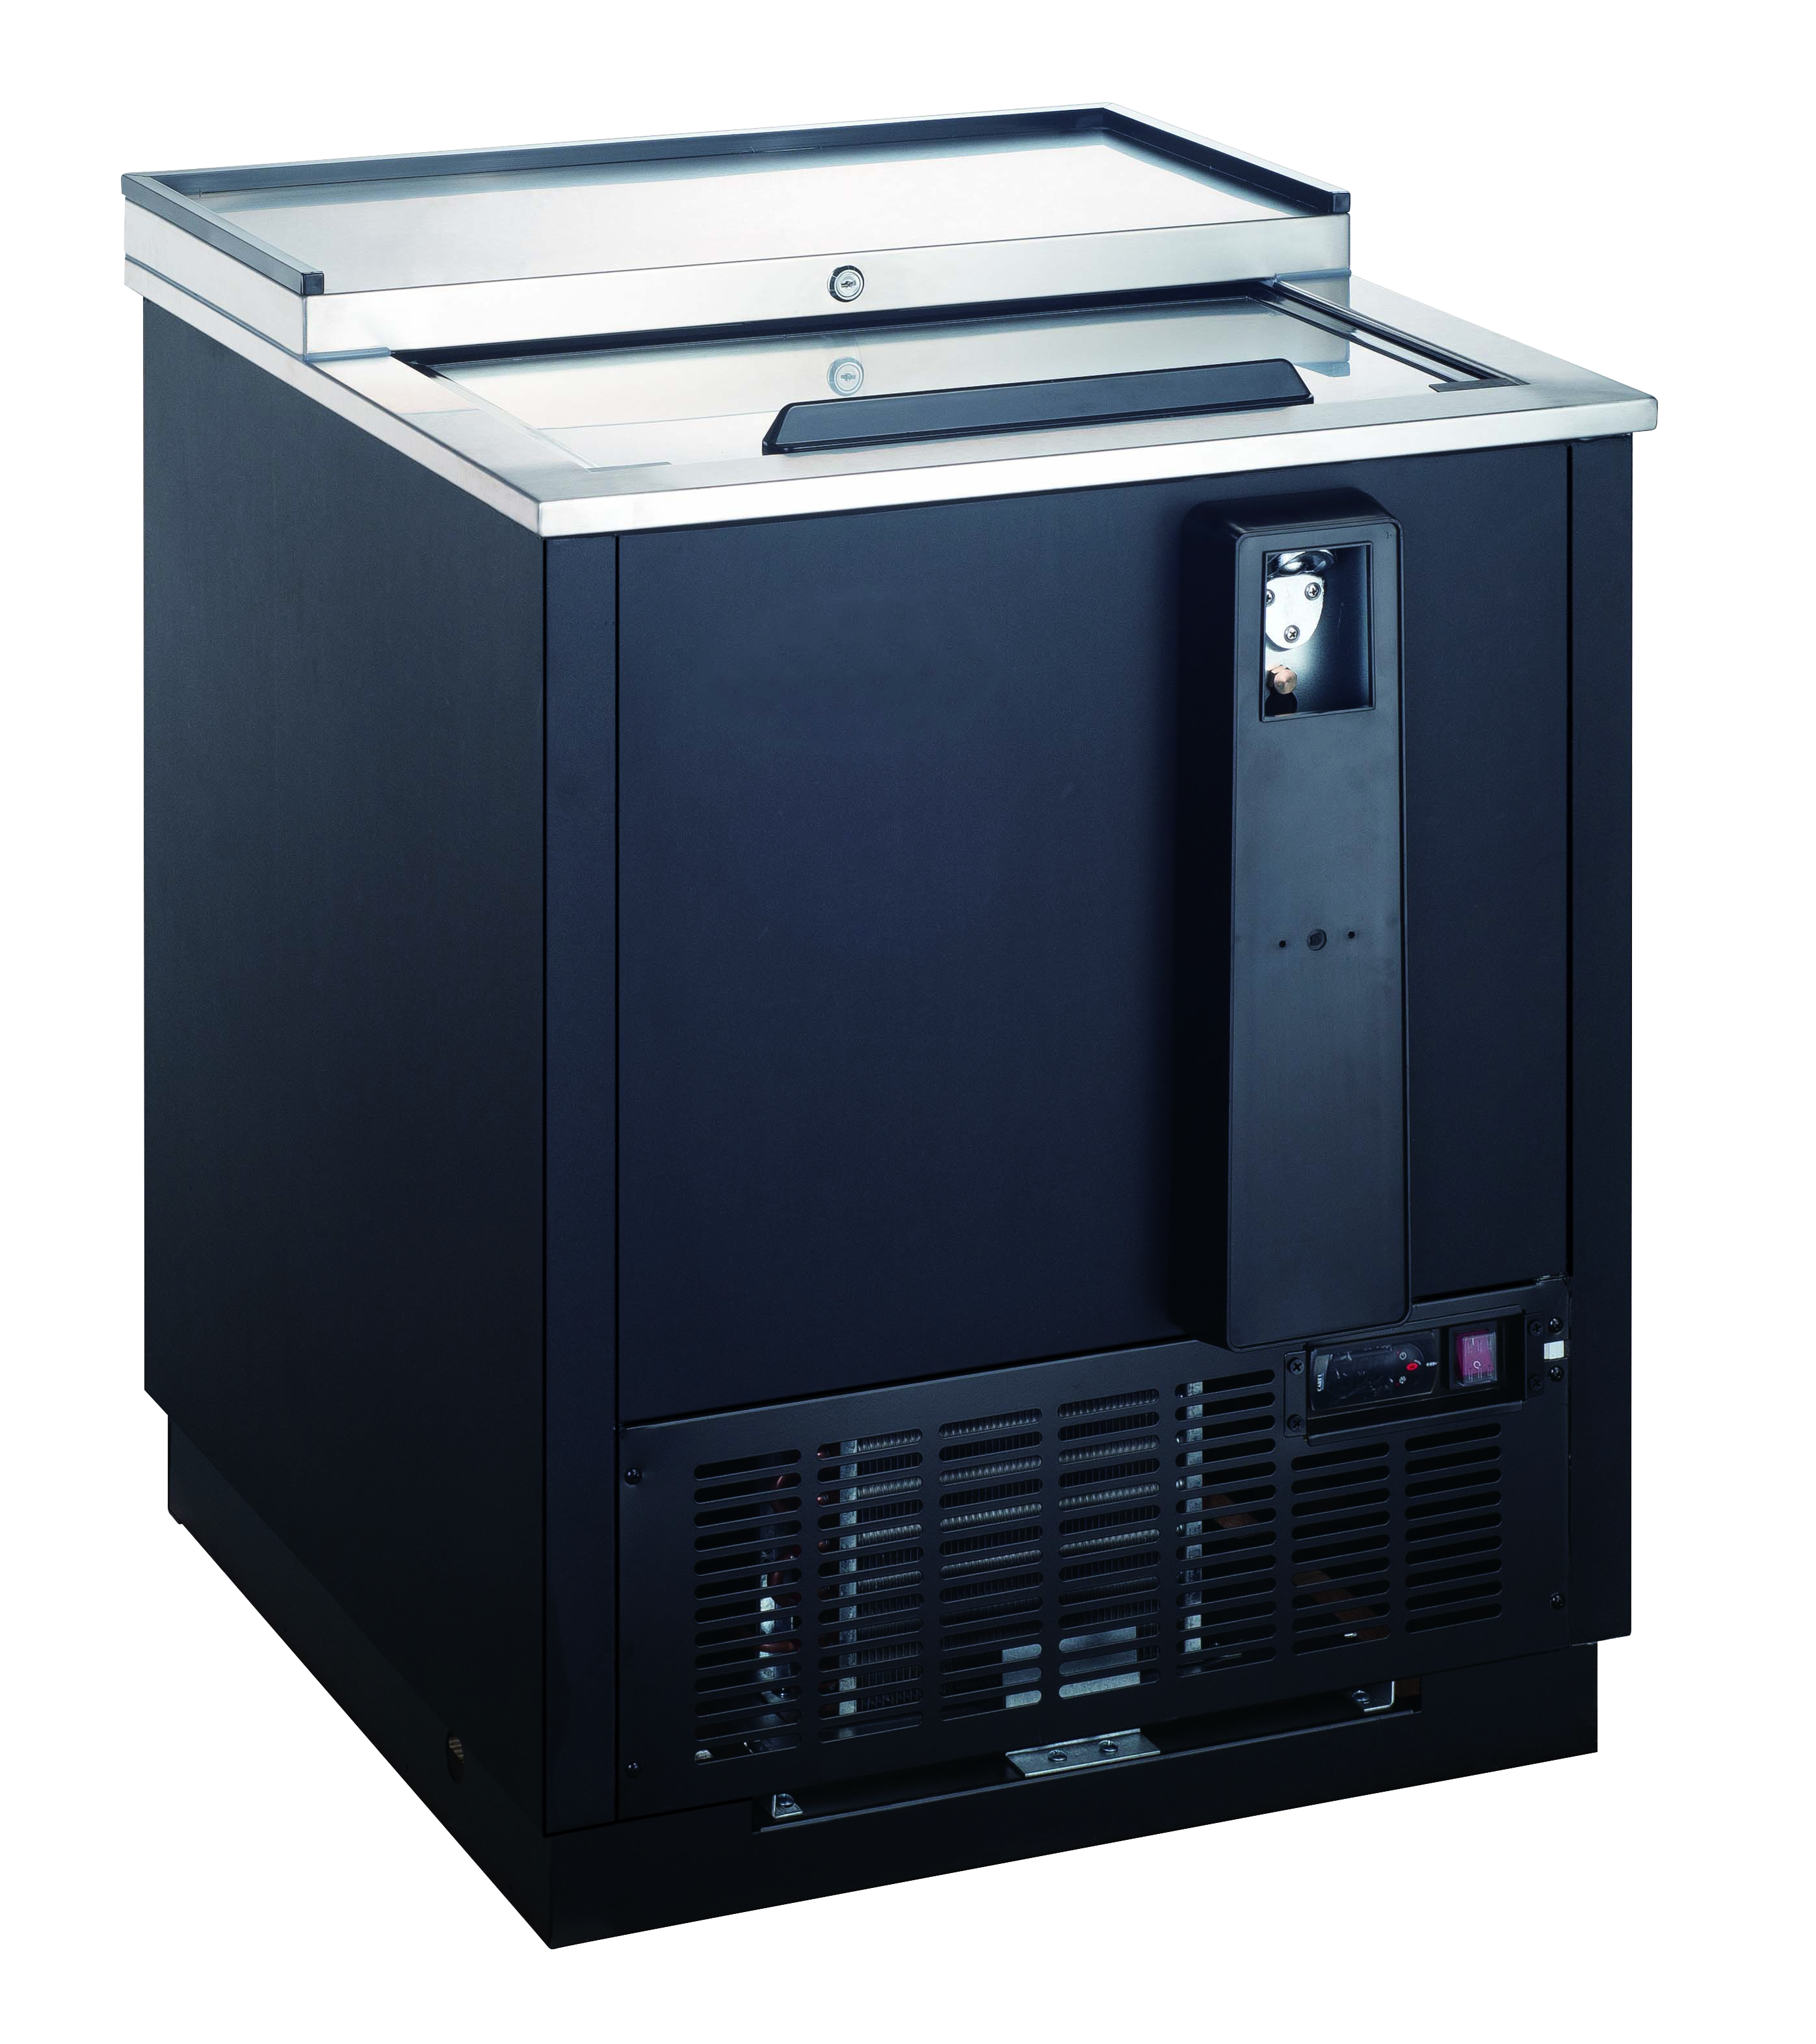 Omcan BBCN0005HC refrigeration > wine and beverage coolers > reach-in bottle coolers